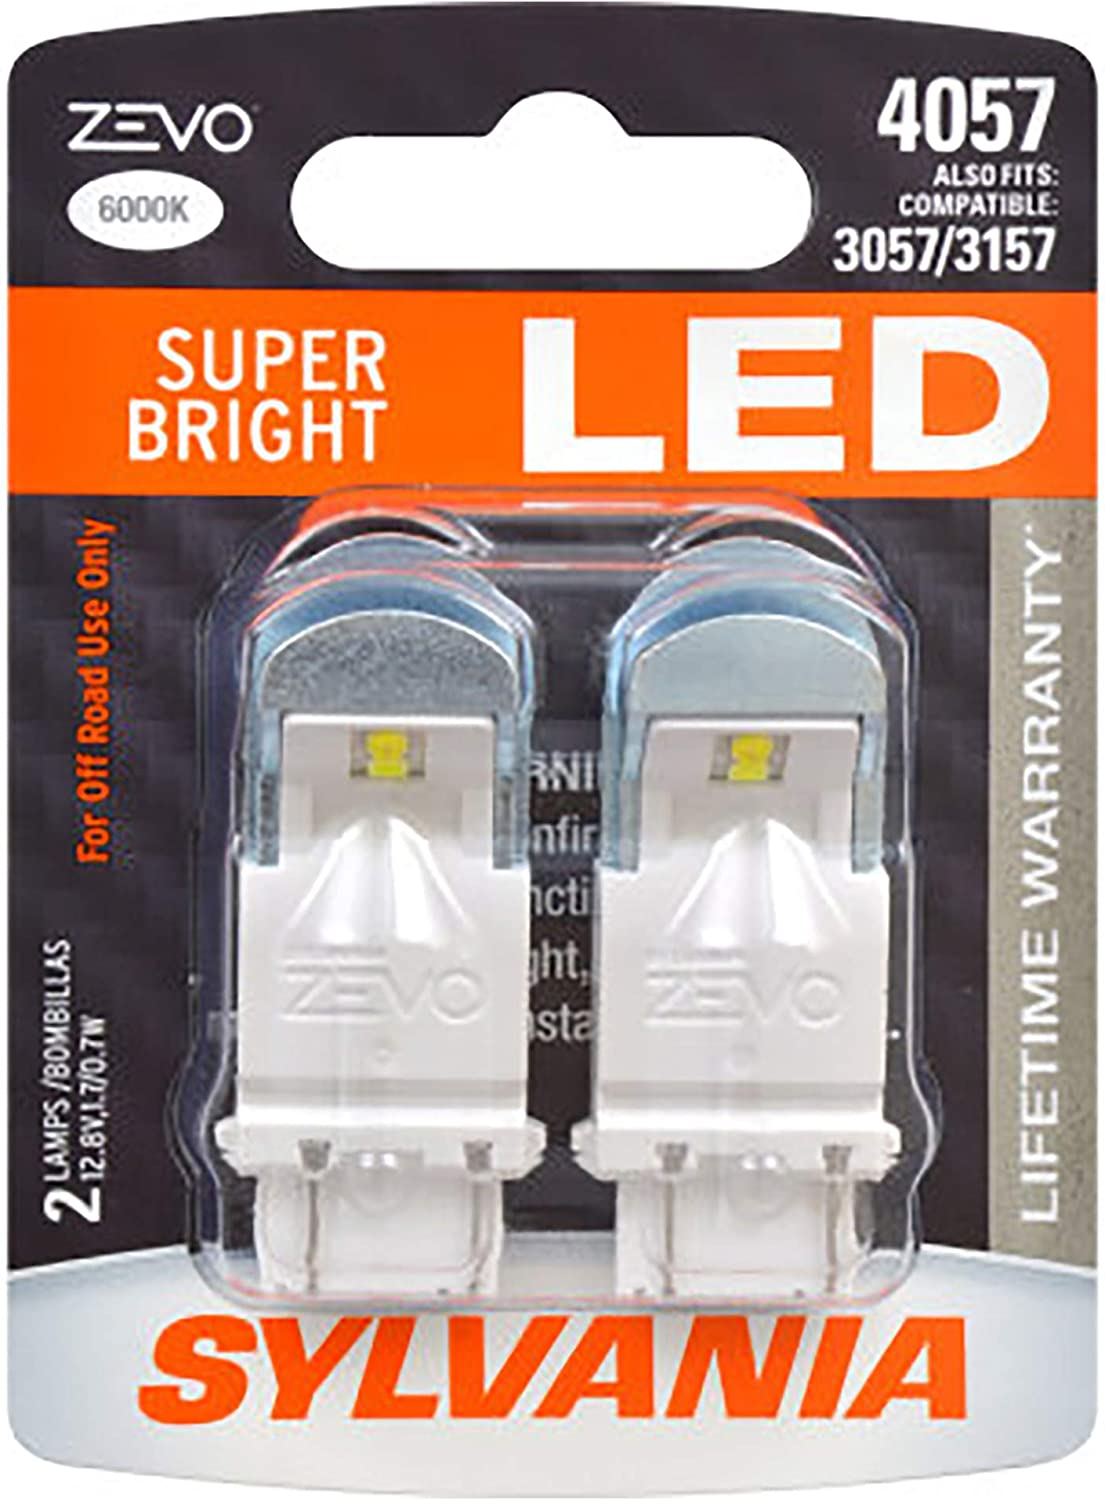 Contains 2 Bulbs SYLVANIA Bright LED Bulb 4057 ZEVO LED Amber Bulb Ideal for Park and Turn Lights